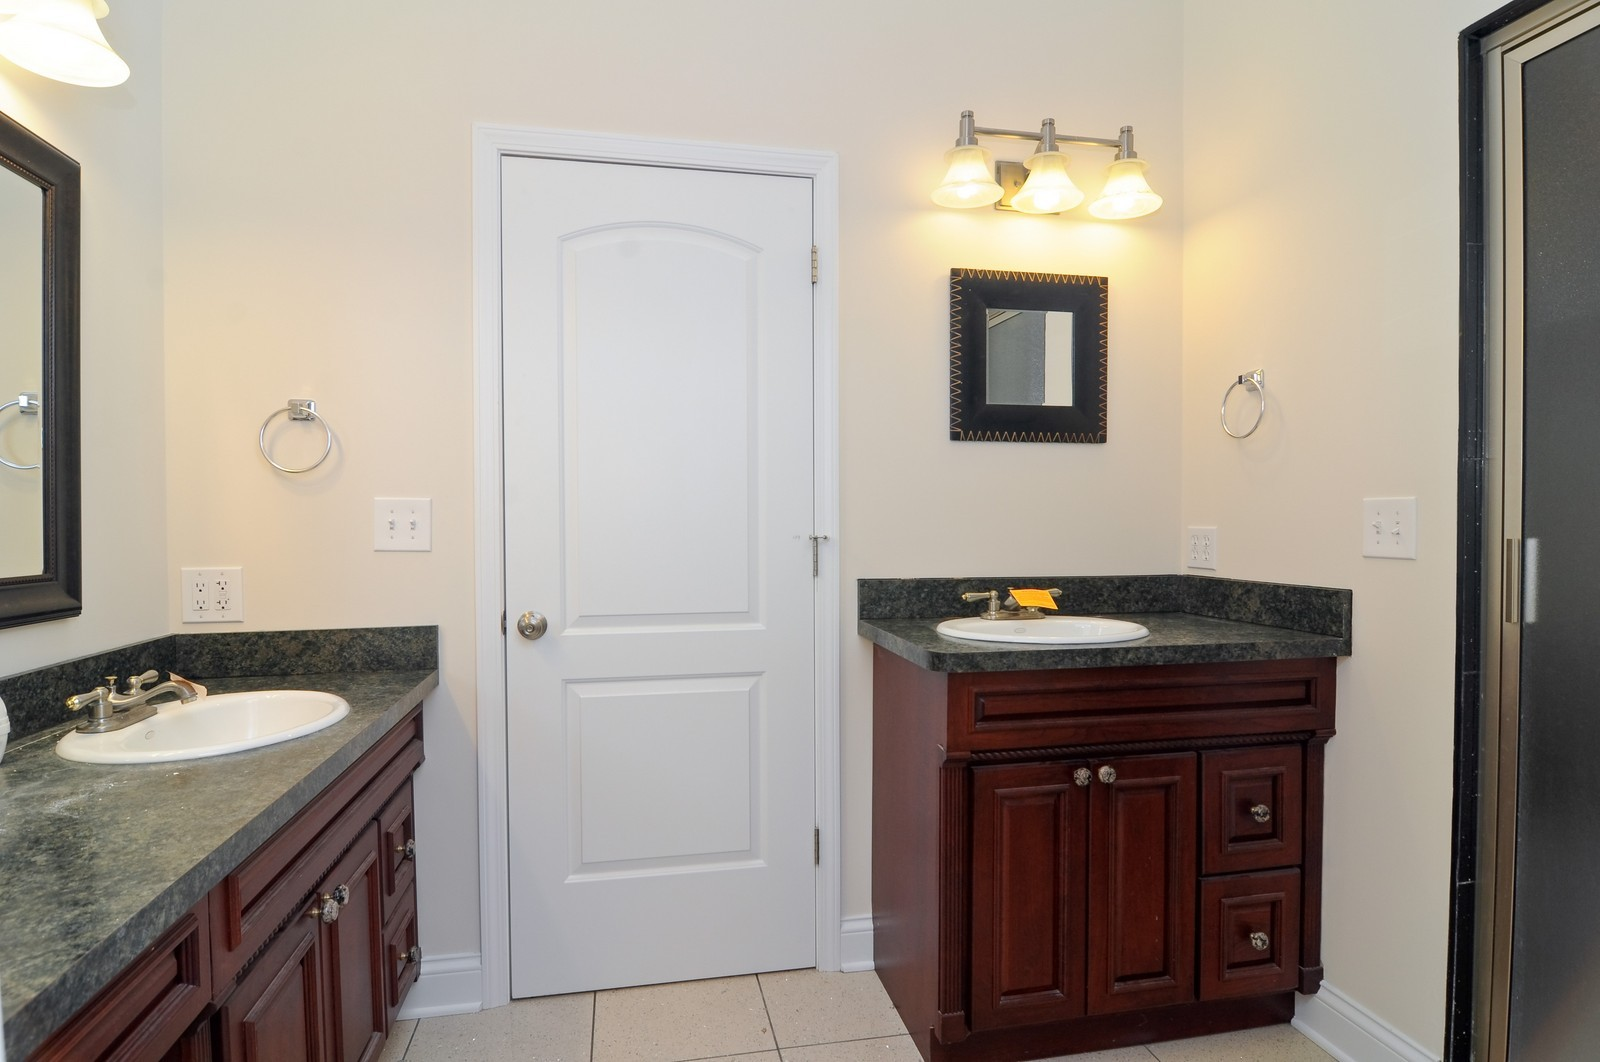 Real Estate Photography - 109 N River Rd, Fox River Grove, IL, 60021 - Master Bathroom